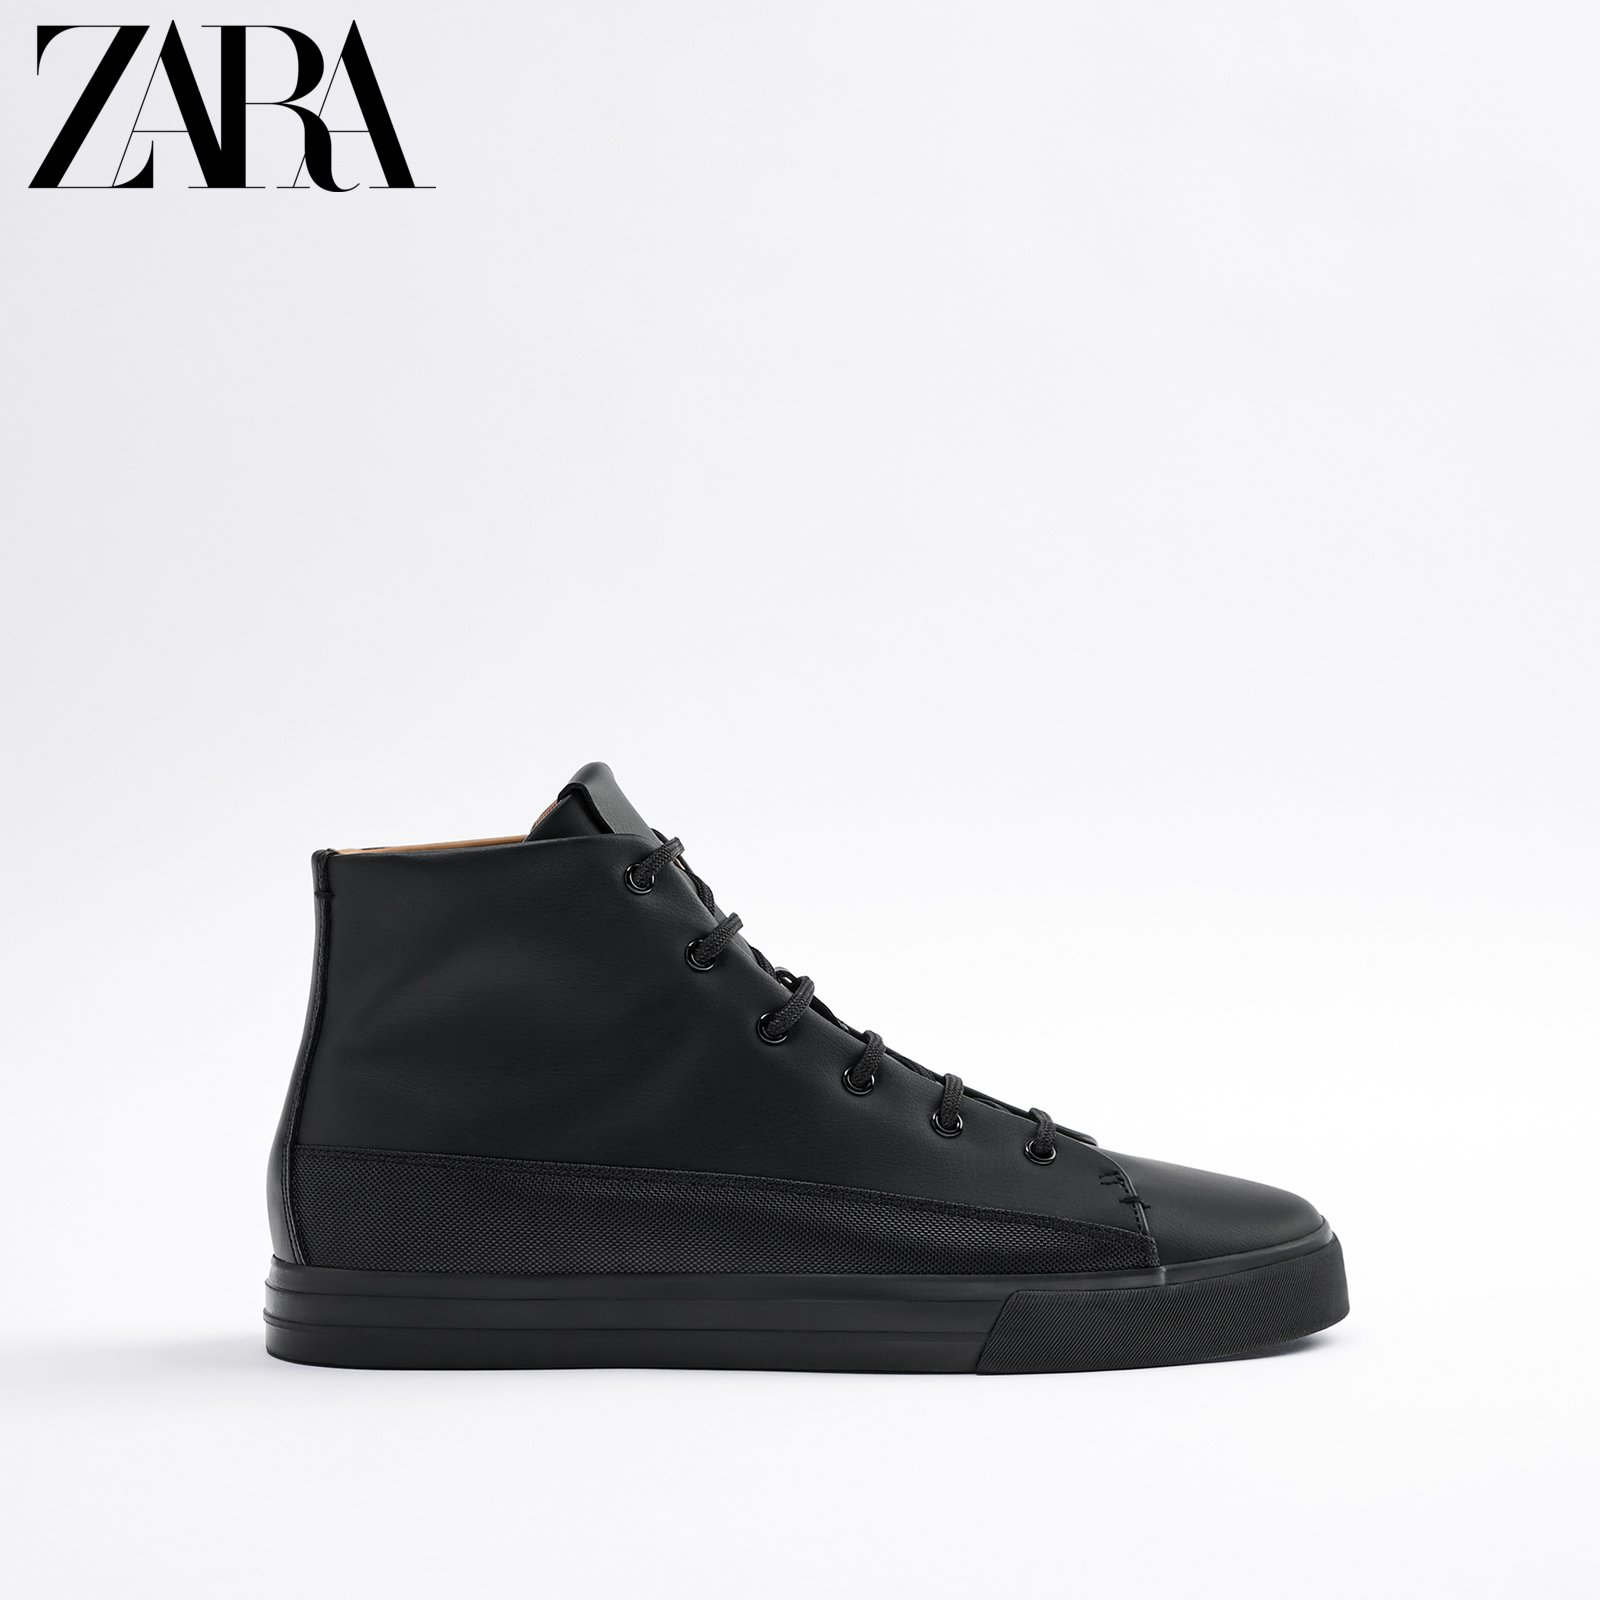 ZARA new men's shoes black sports short boots 12107620040